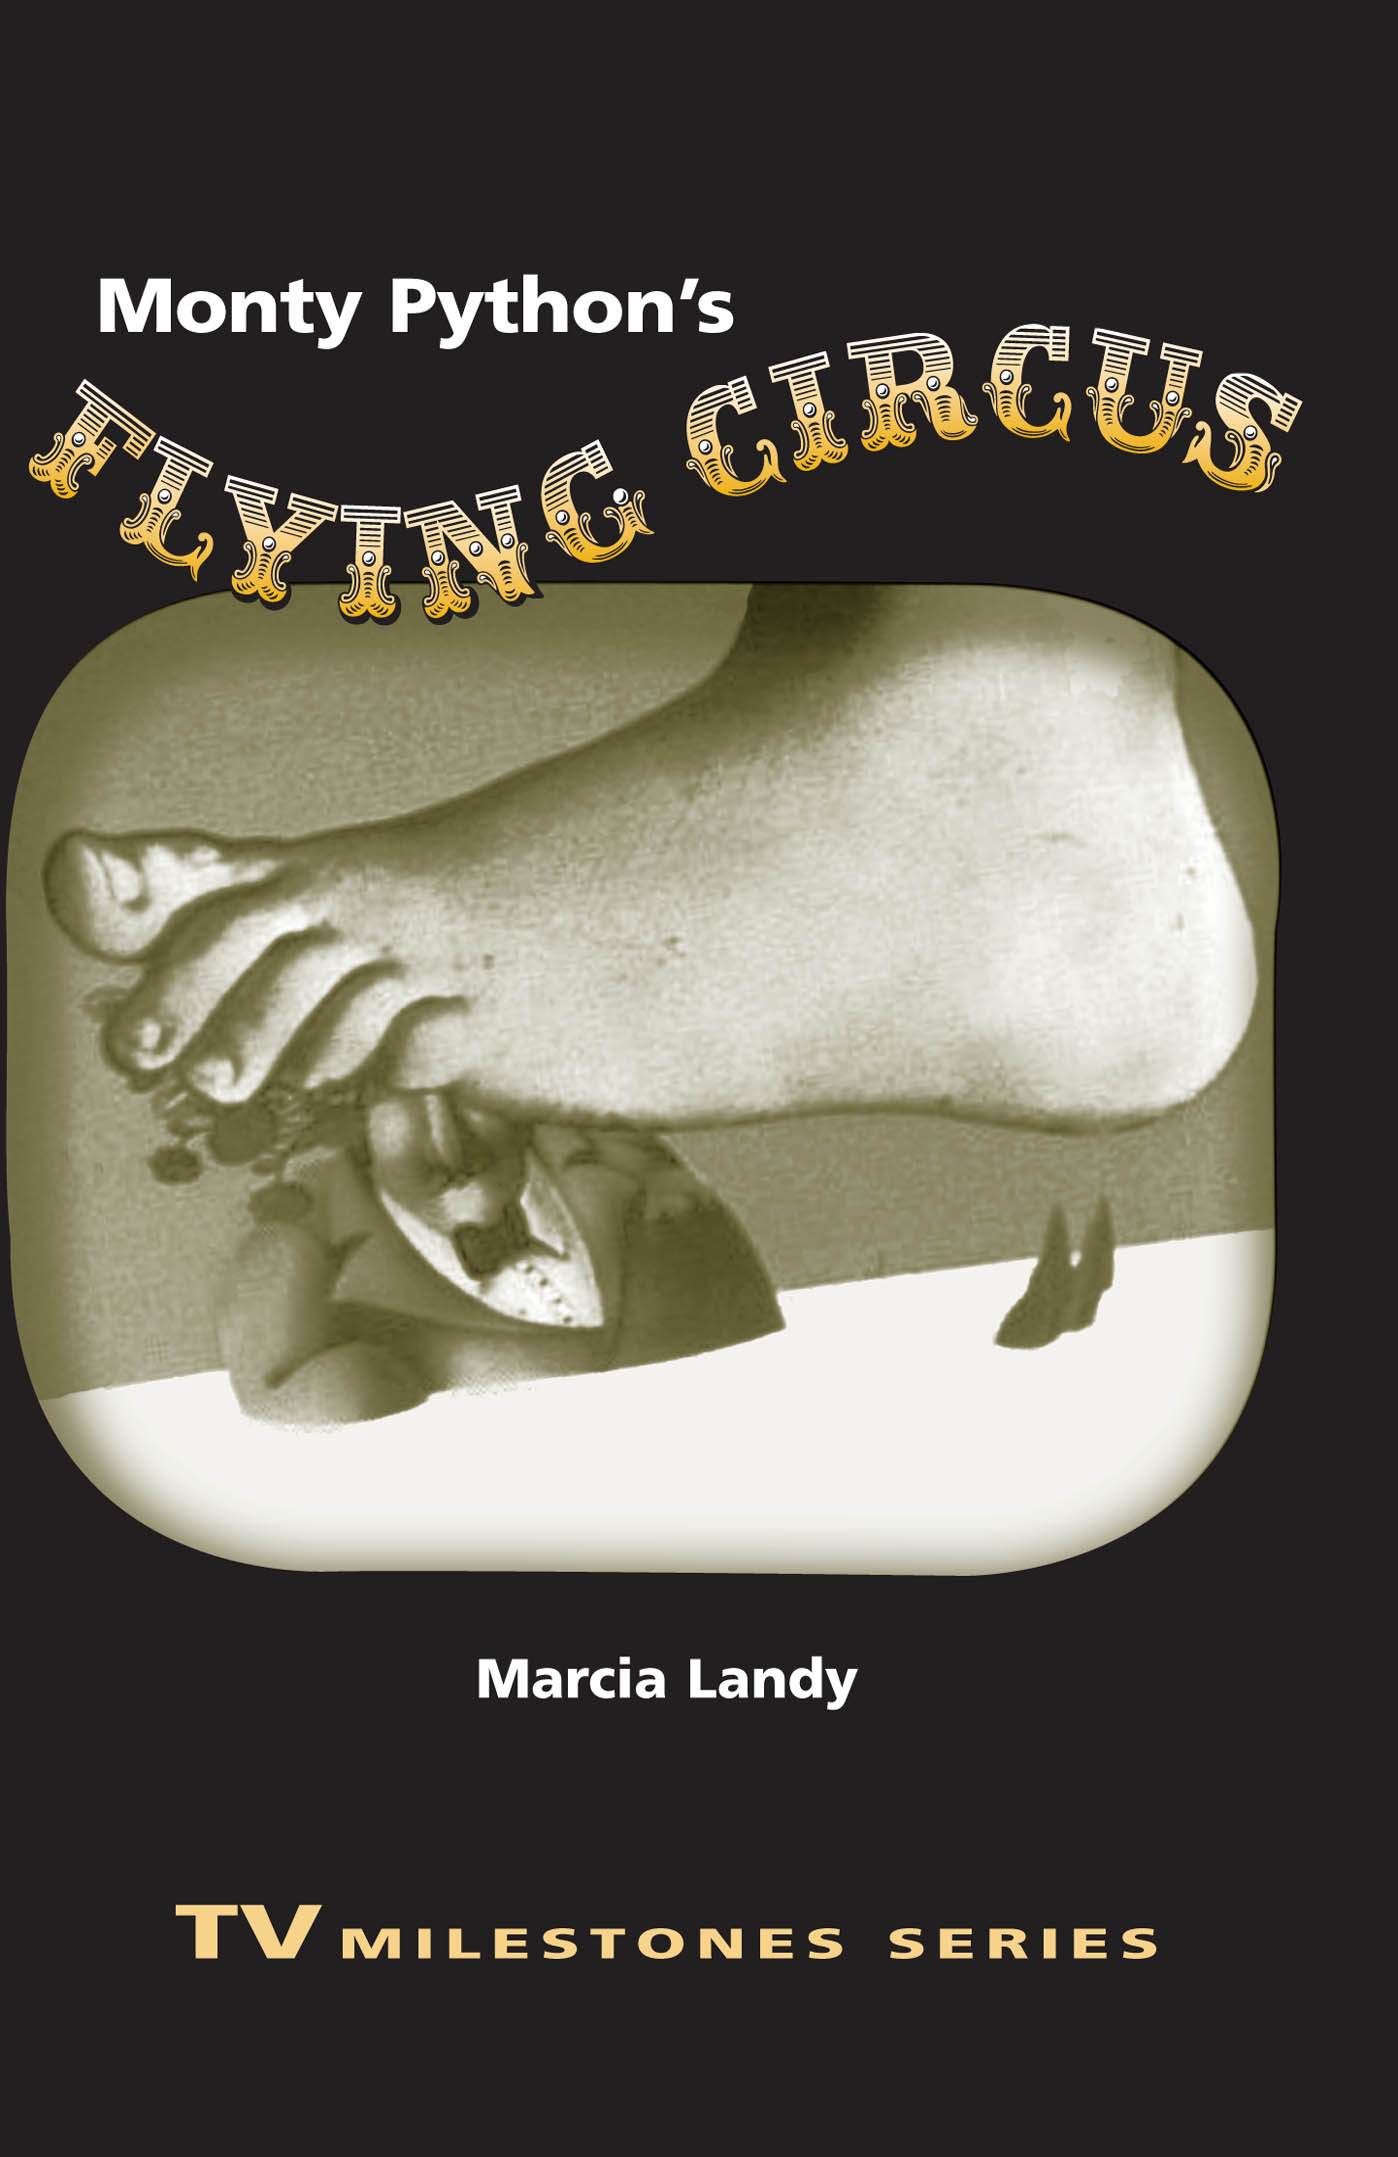 Monty Python's Flying Circus By: Marcia Landy